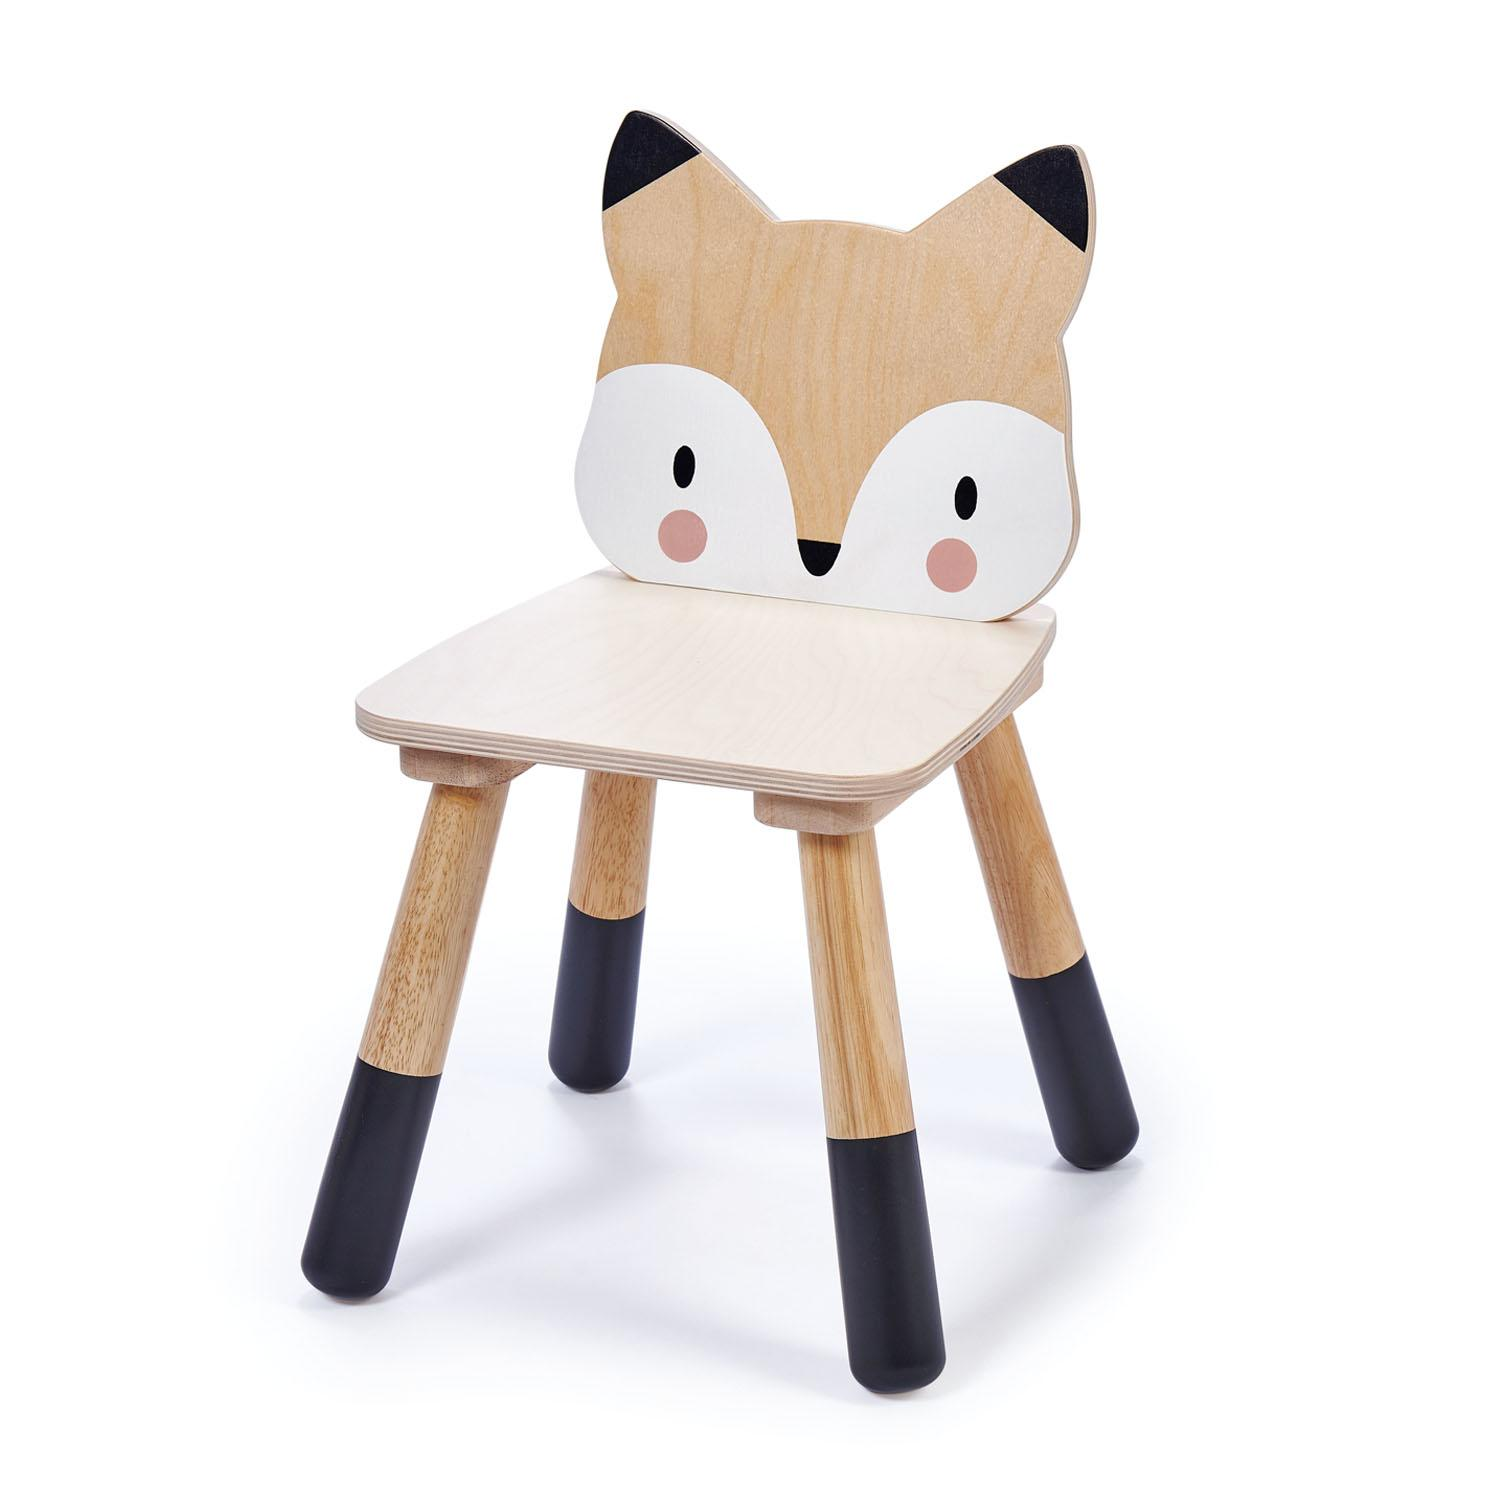 New Wooden Forest Fox Themed Children's Chair #2